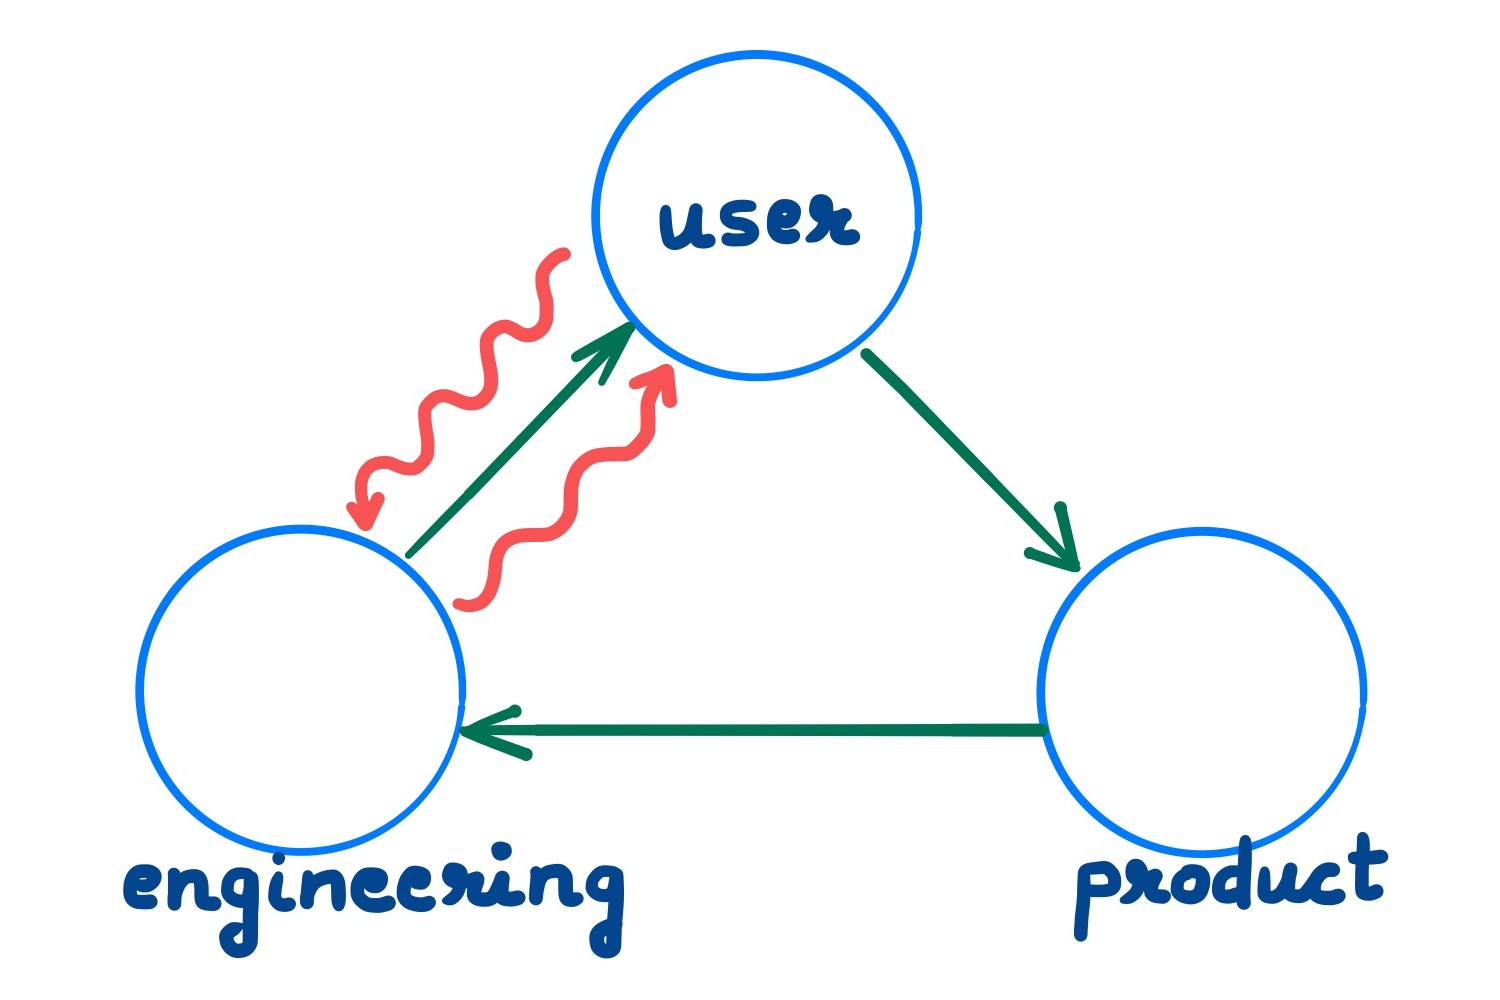 Regular product development as green arrows; Innovation loops as red squiggles.